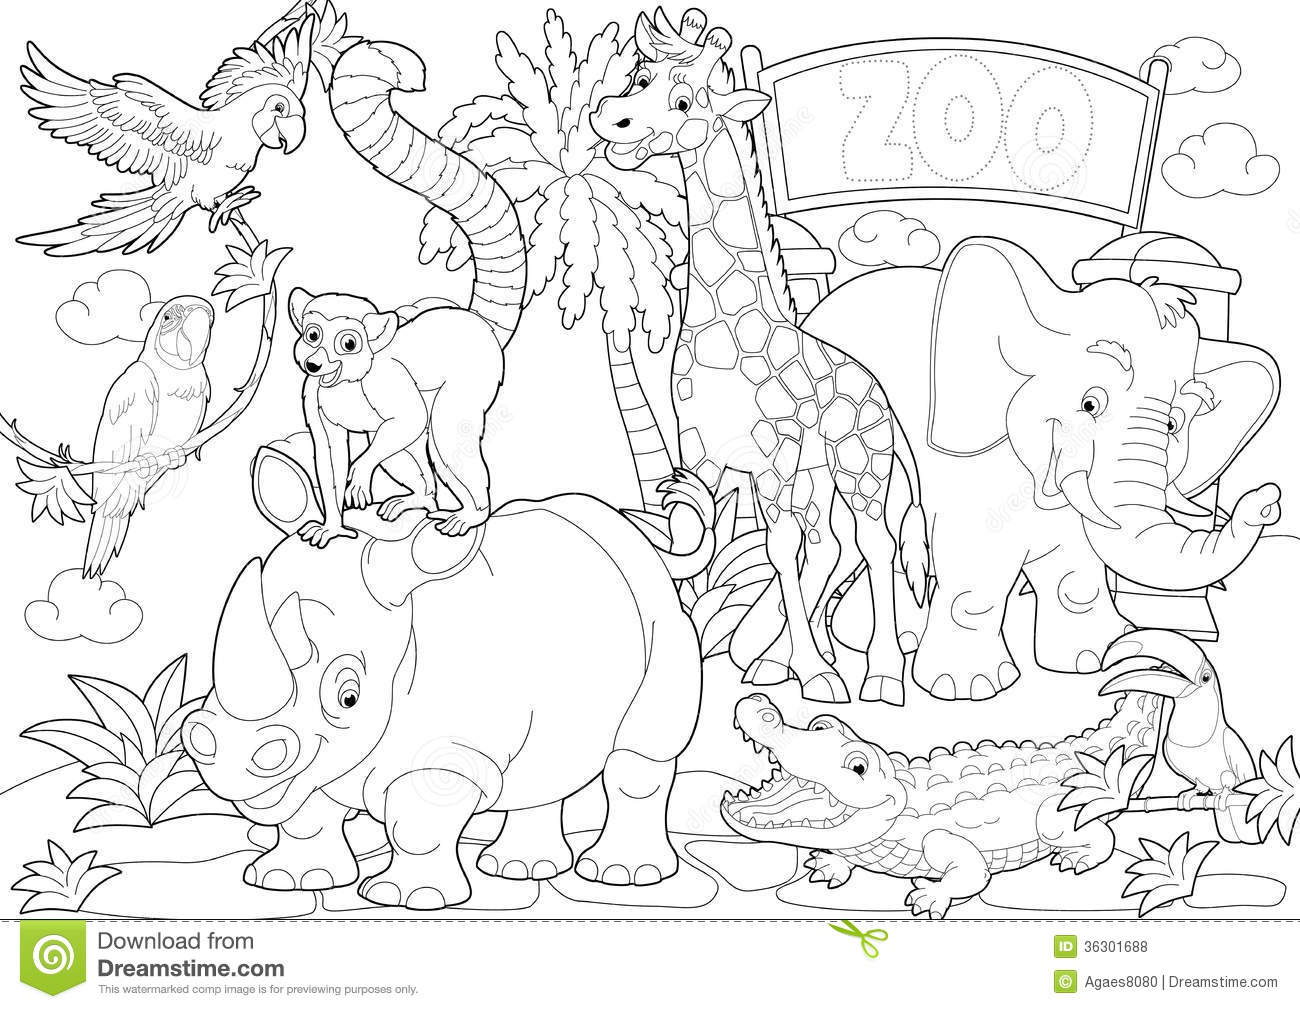 zoo map coloring page australian animals colouring pages australia animals zoo map page coloring